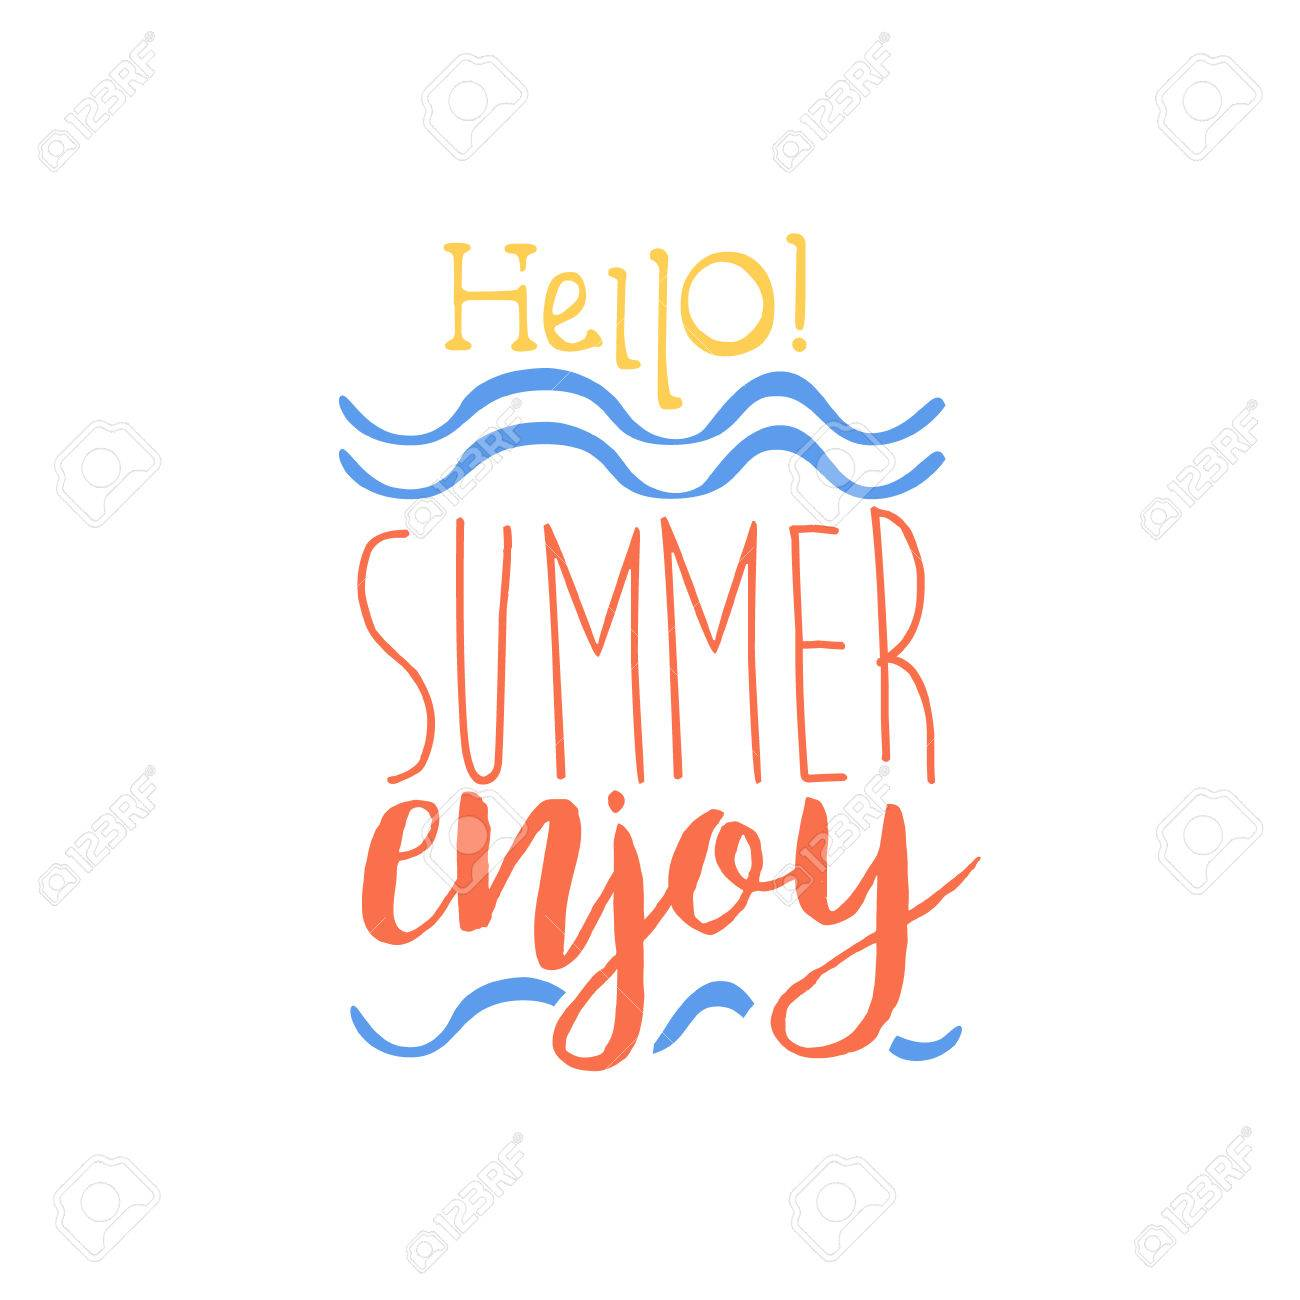 Etonnant Hello Summer Colorful Ad. Colorful Summer Beach Holiday Promotion Banner.  Cool Calligraphic Hand Drawn